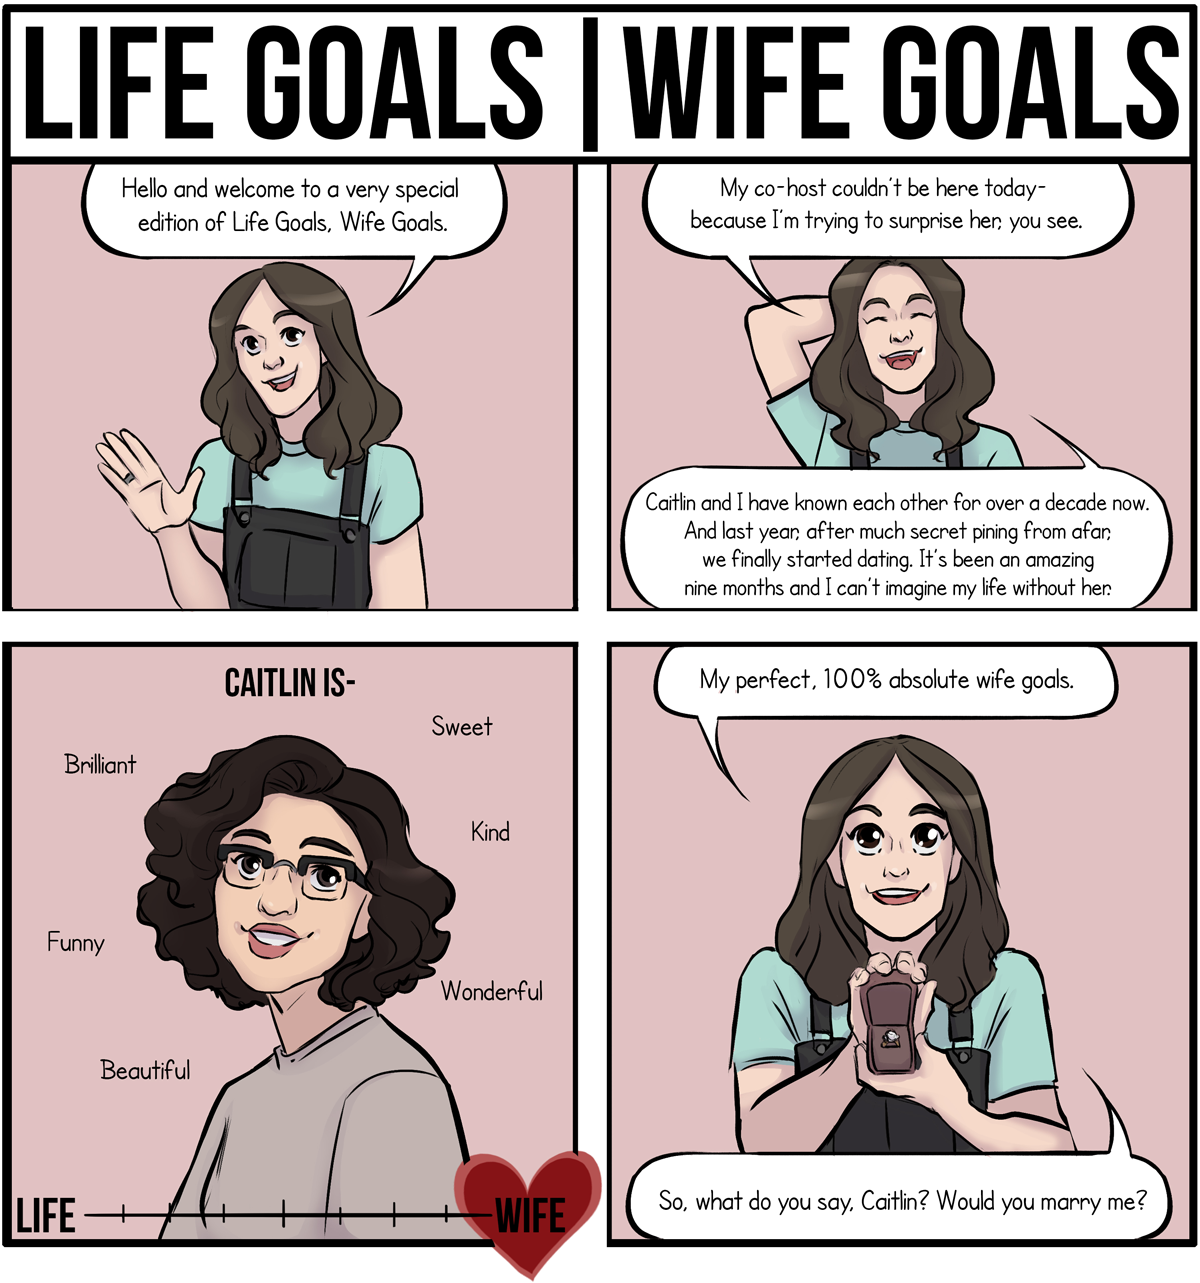 Life Goals, Wife Goals: Hello and welcome to a  very special edition of Life Goals, Wife Goals. My co-hot couldn't be here today - because I'm trying to surprise her, you see. Caitlin and I have known each other for over a decade now. And last year, after much secret pining from afar, we finally started dating. It's been an amazing nine months and I can't imagine my life without her. Caitlin is: Brilliant, Sweet, Kind, Funny, Wonderful, Beautiful. [graph ranging from life to wife, ranking Caitlin as an off-the-charts wife!!!!] My perfect-100% wife goals. So, what do you say, Caitlin? Would you marry me?